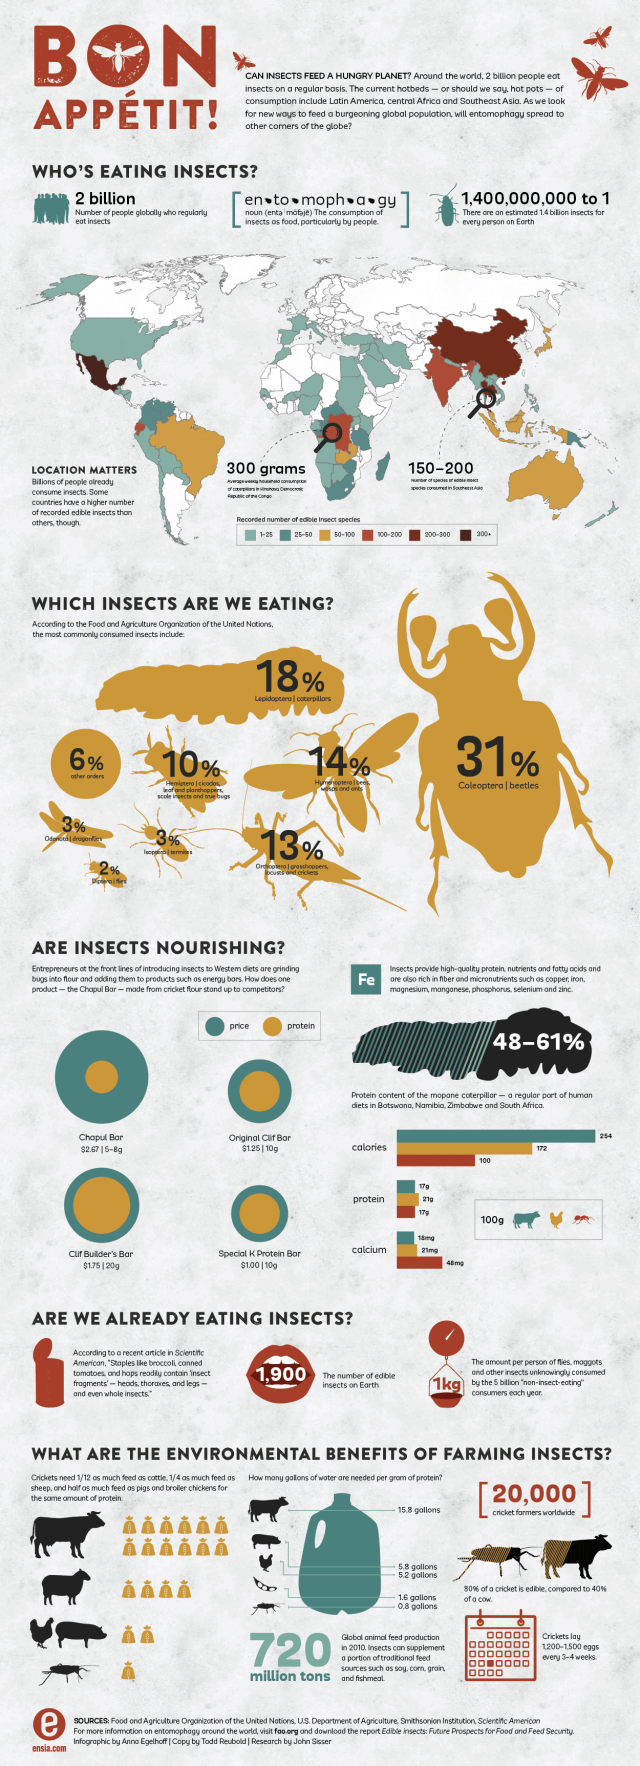 Can Insects Feed a Hungry Planet?